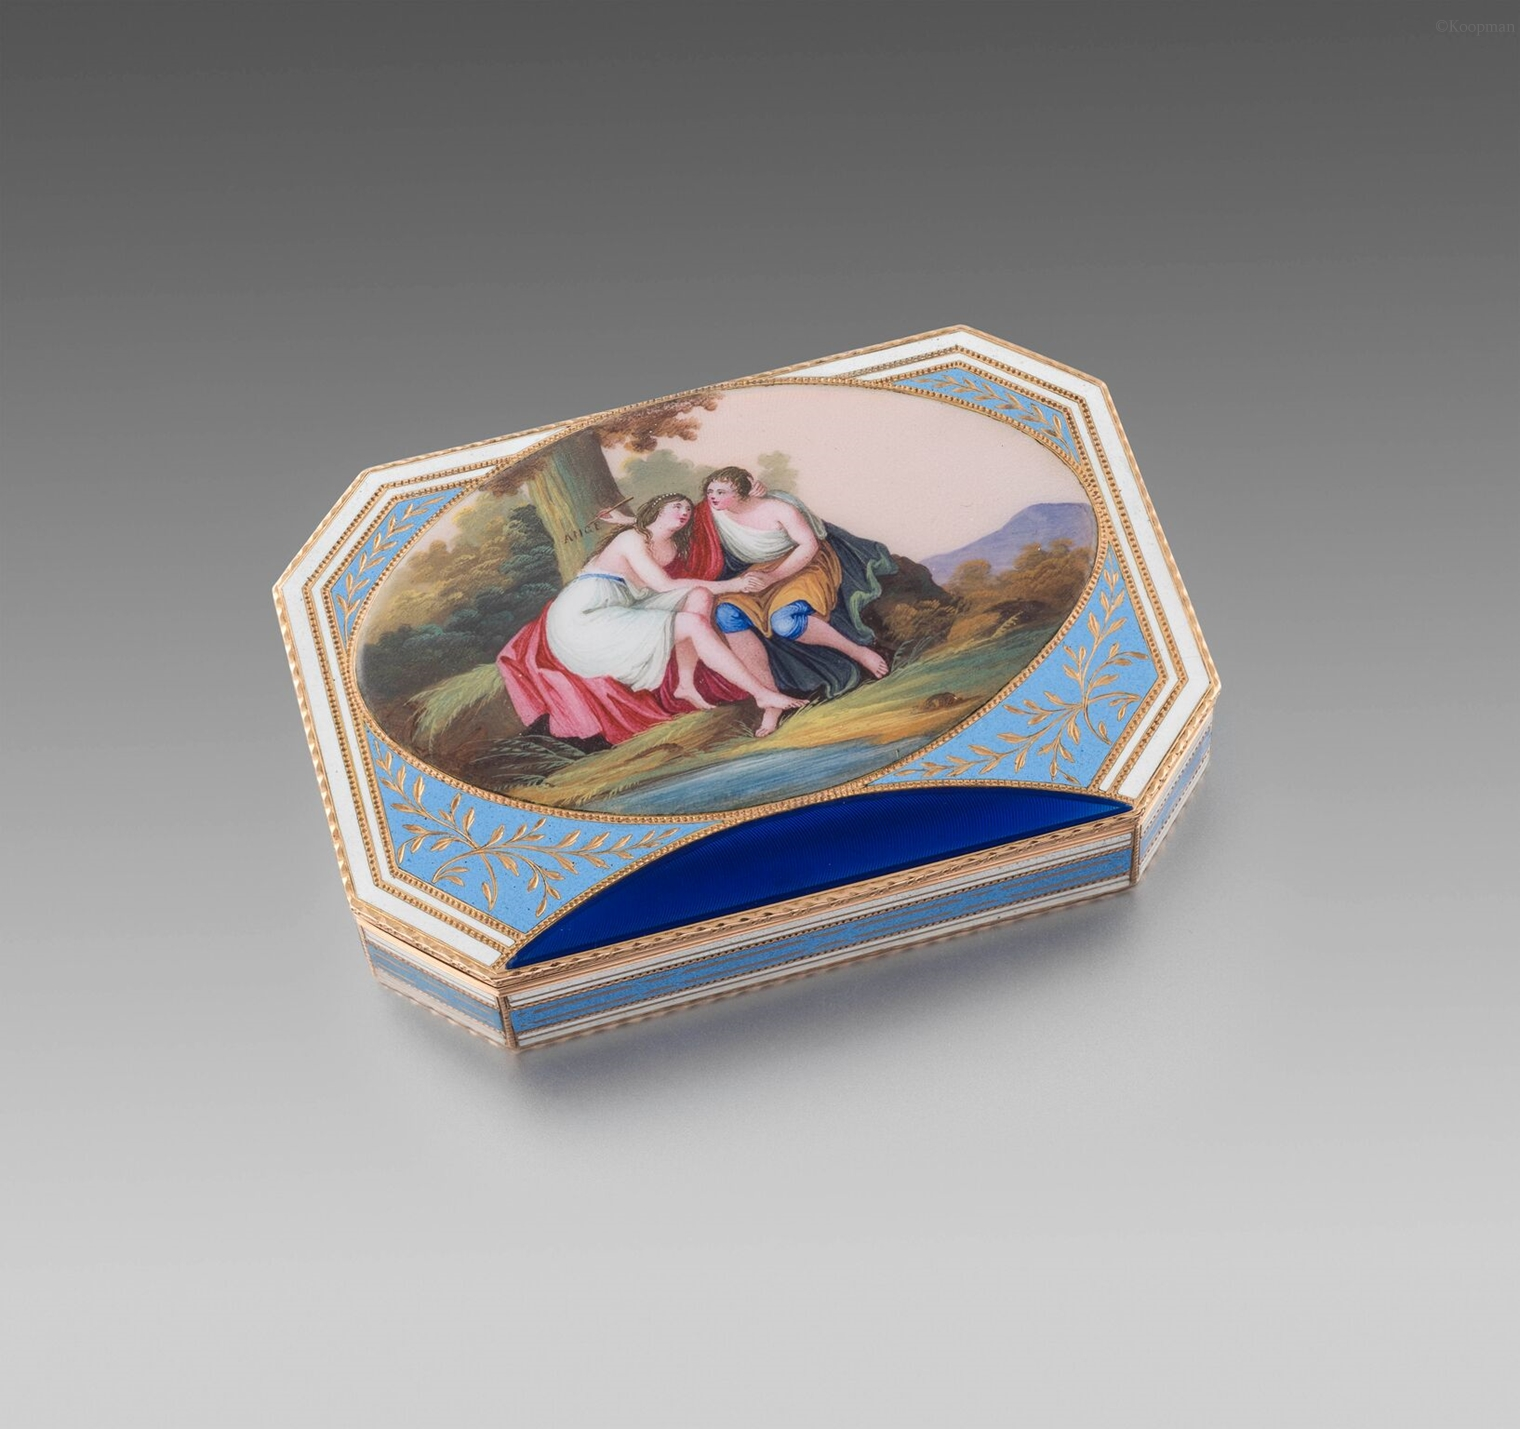 An Early 19th Century Snuff Box